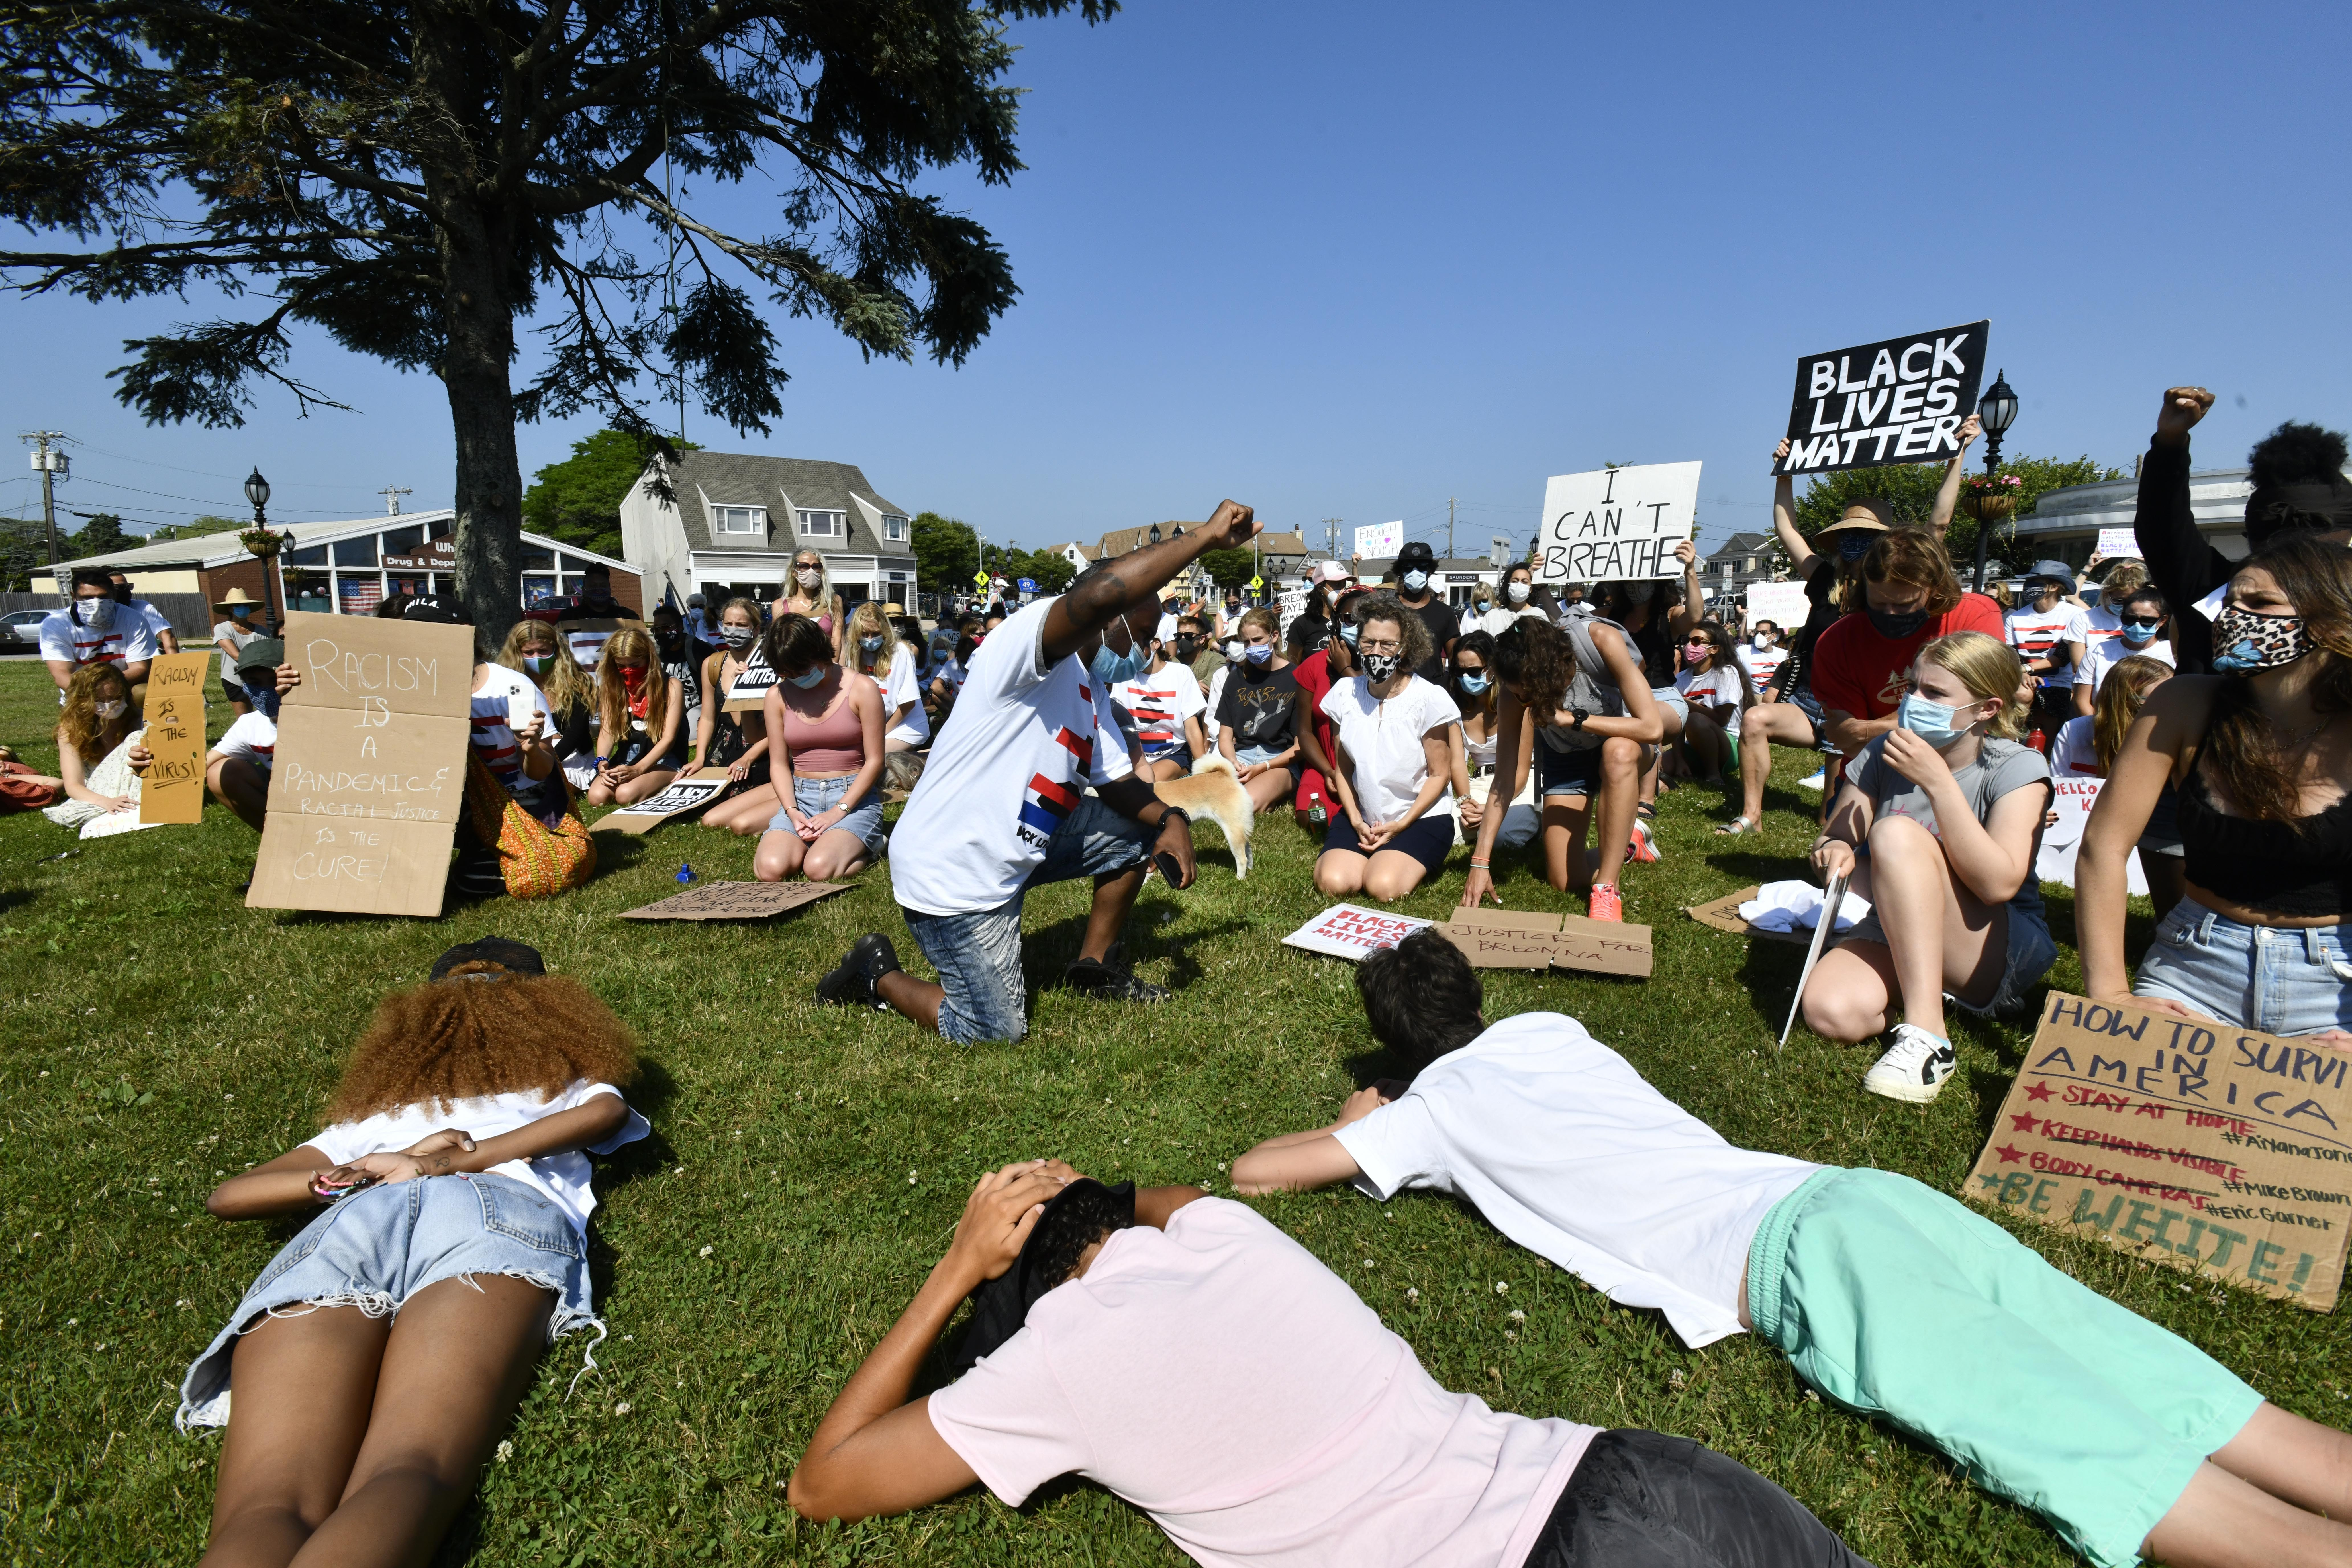 Protesters in Montauk on Monday.